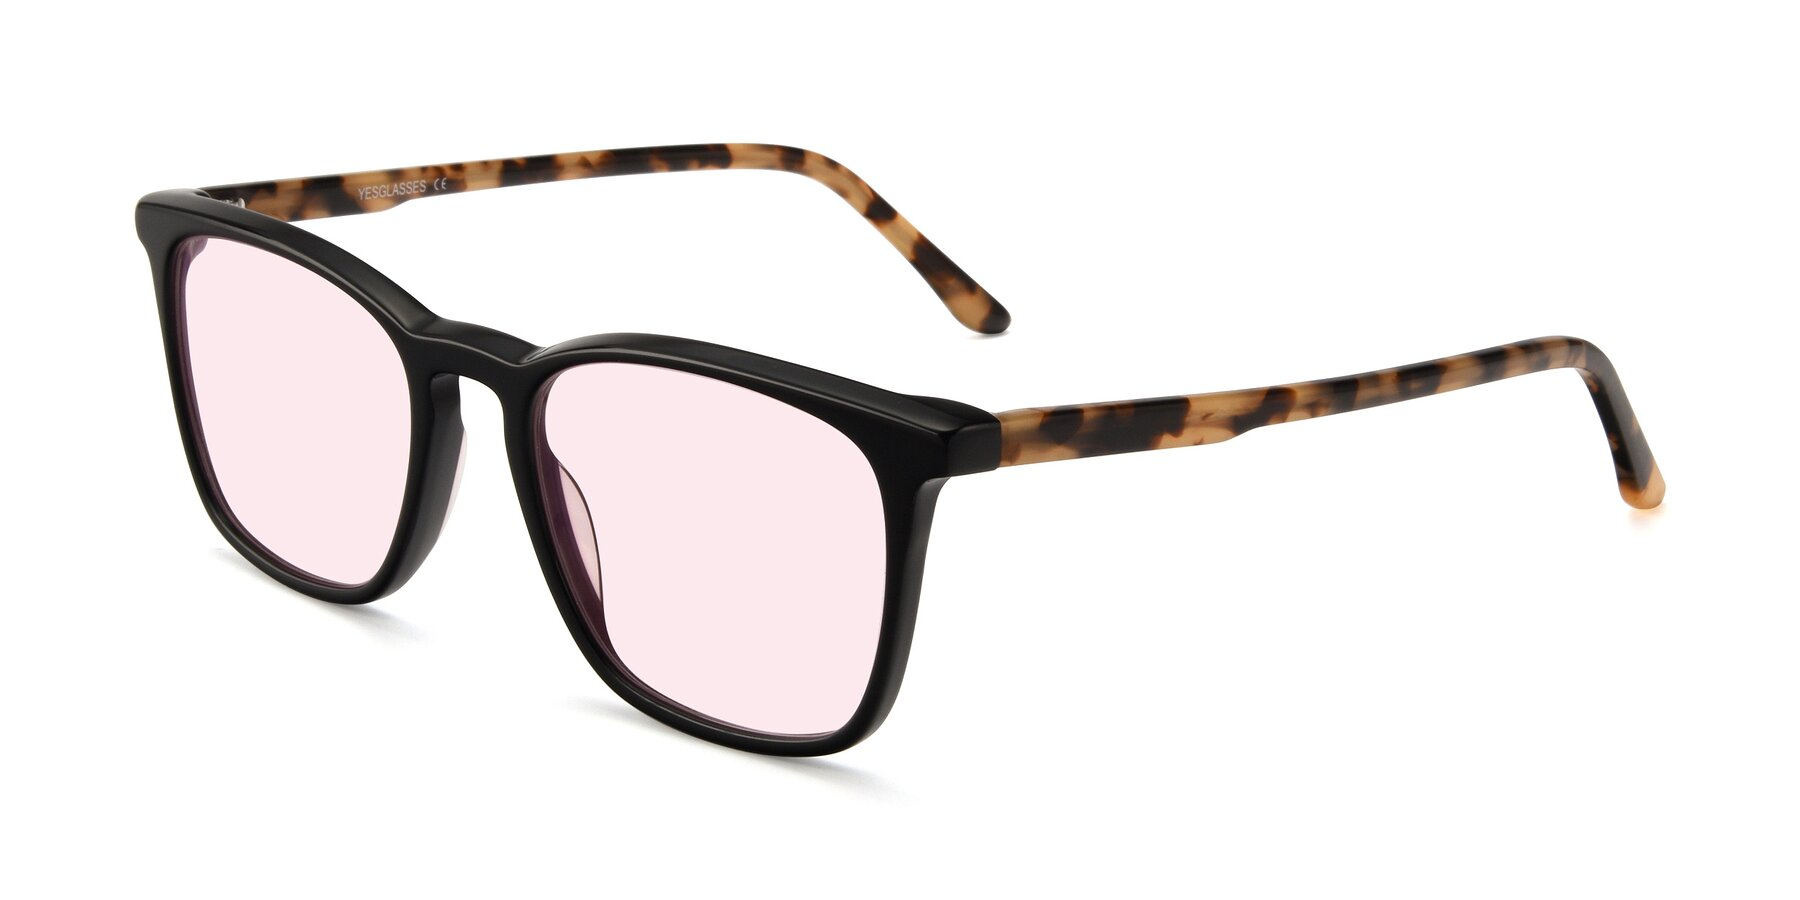 Angle of Vigor in Black-Tortoise with Light Pink Tinted Lenses